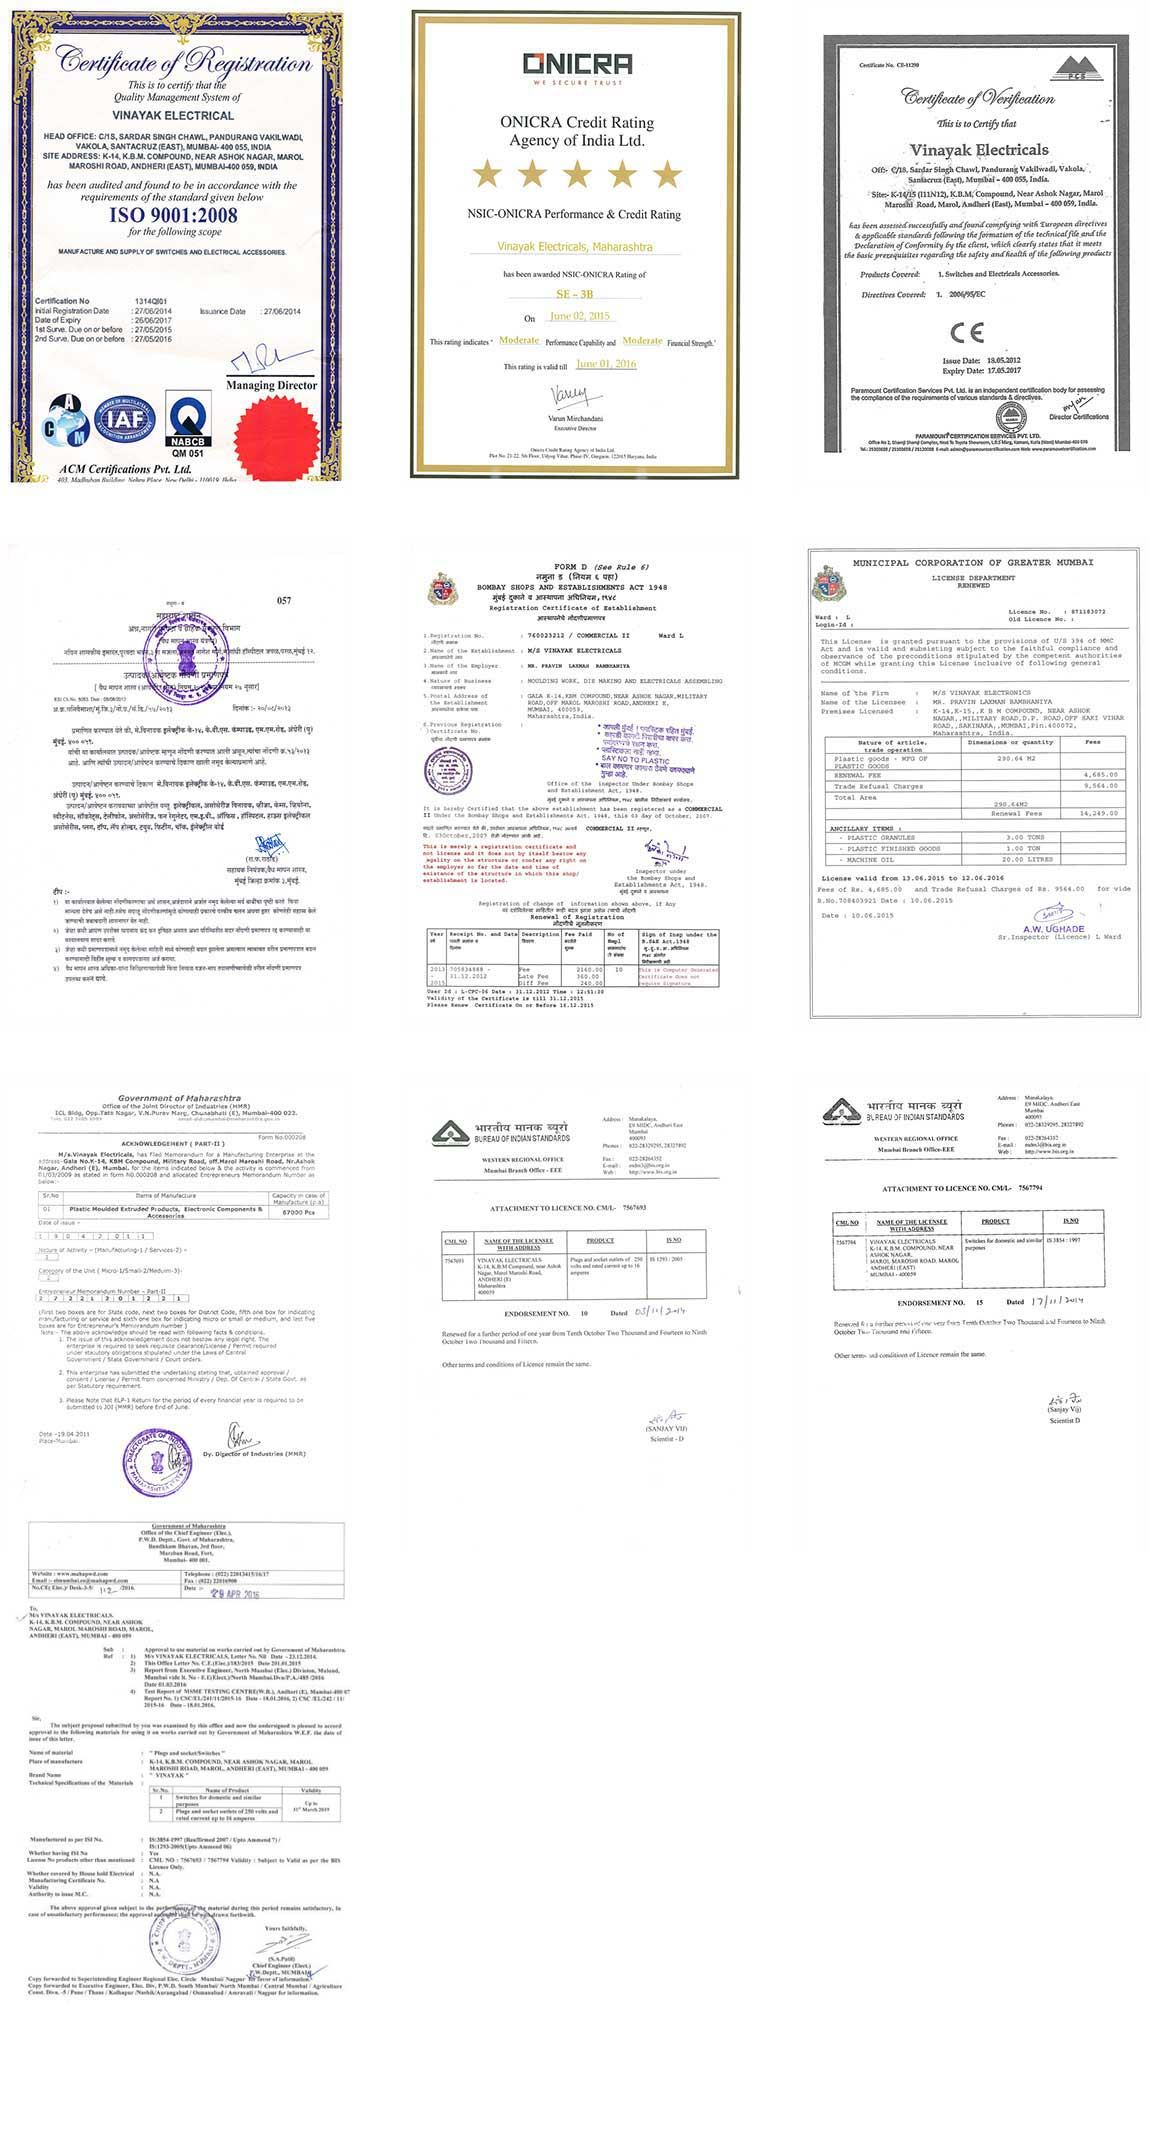 Quality & Certificates